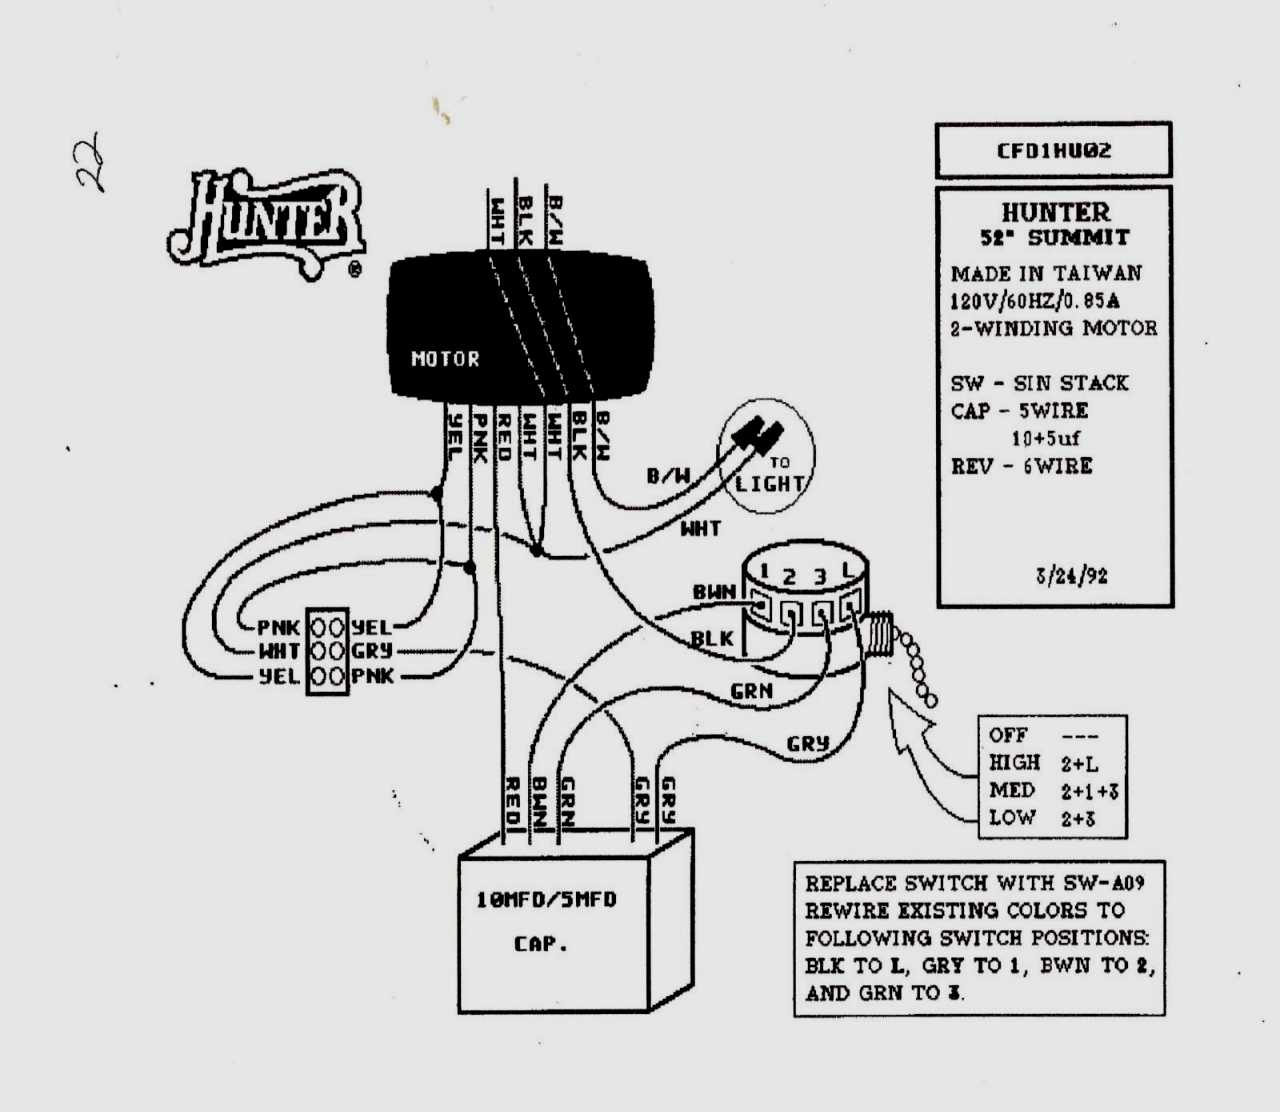 Chain Switch Wiring Diagram - Simple Wiring Diagram - 3 Speed Pull Chain Switch Wiring Diagram